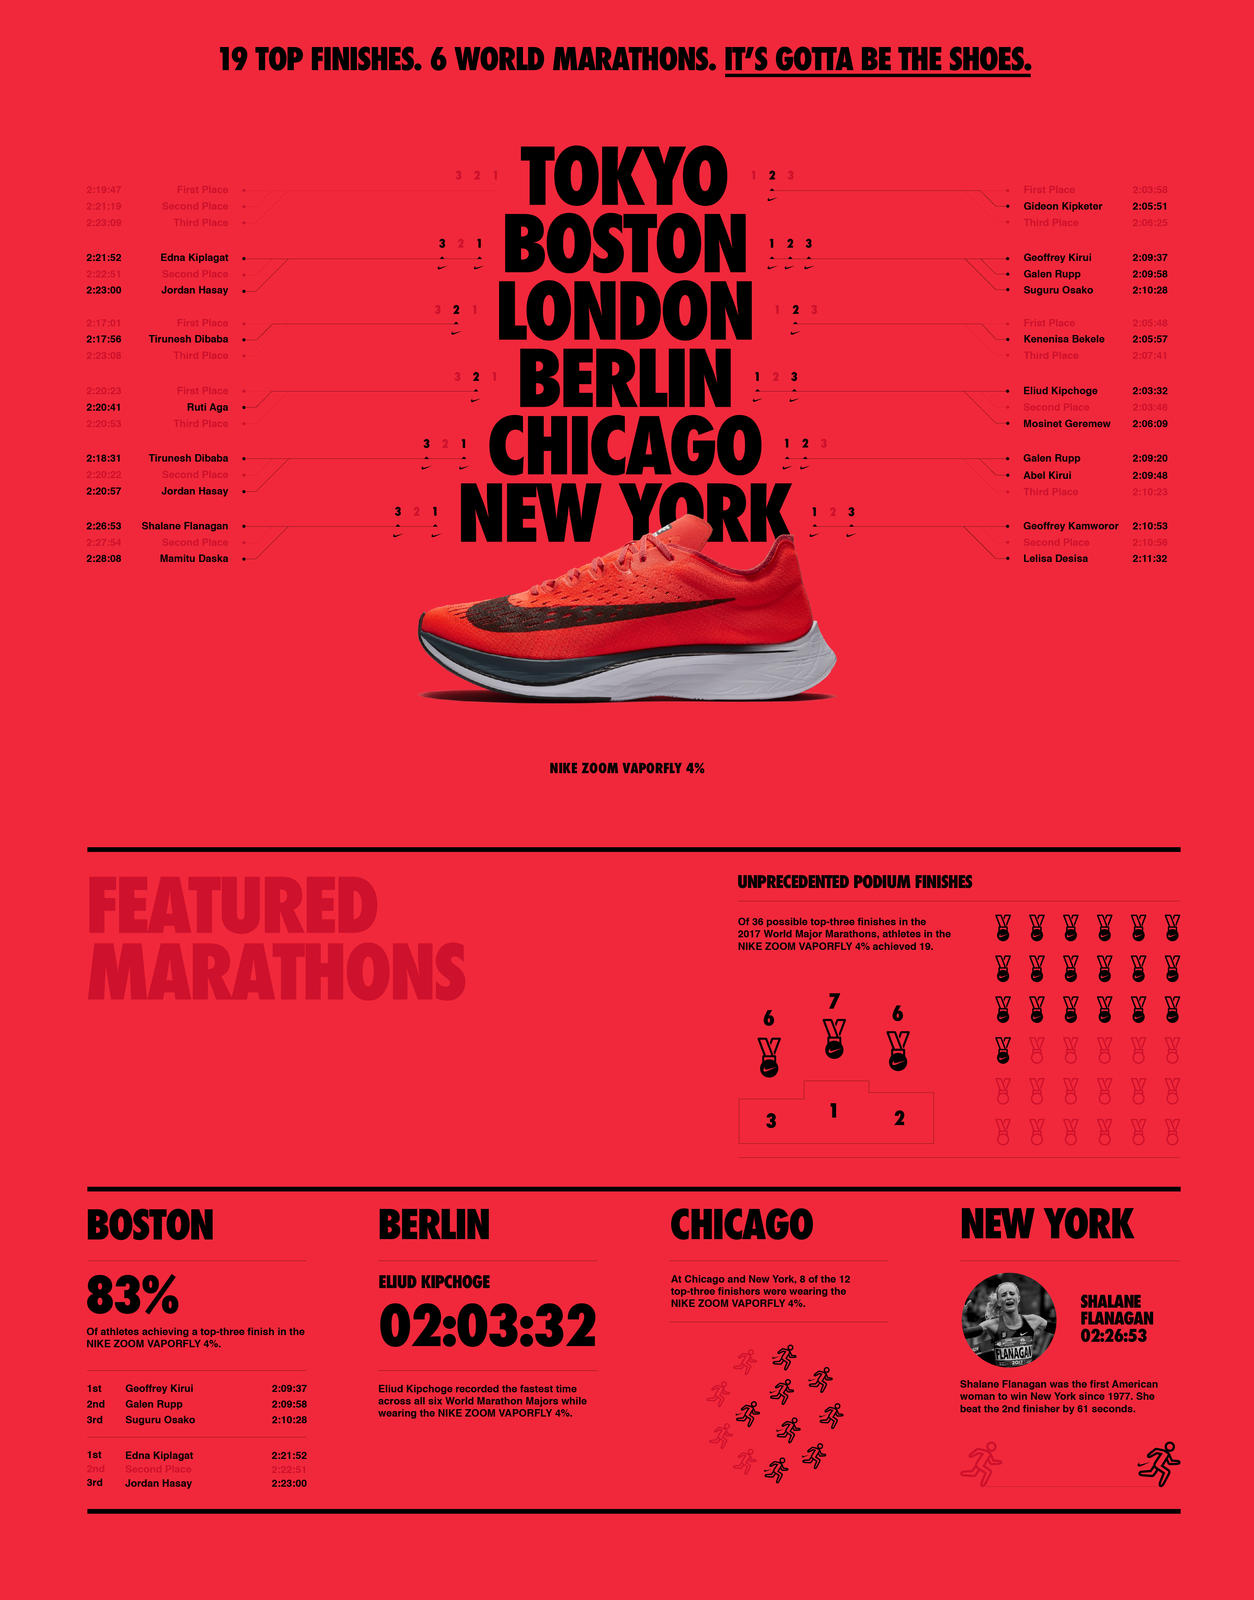 65848bc1f0d2c ... which has resulted in 19 runners wearing these shoes (out of a possible  36) finishing in top podium places in major marathons around the world in  2017.